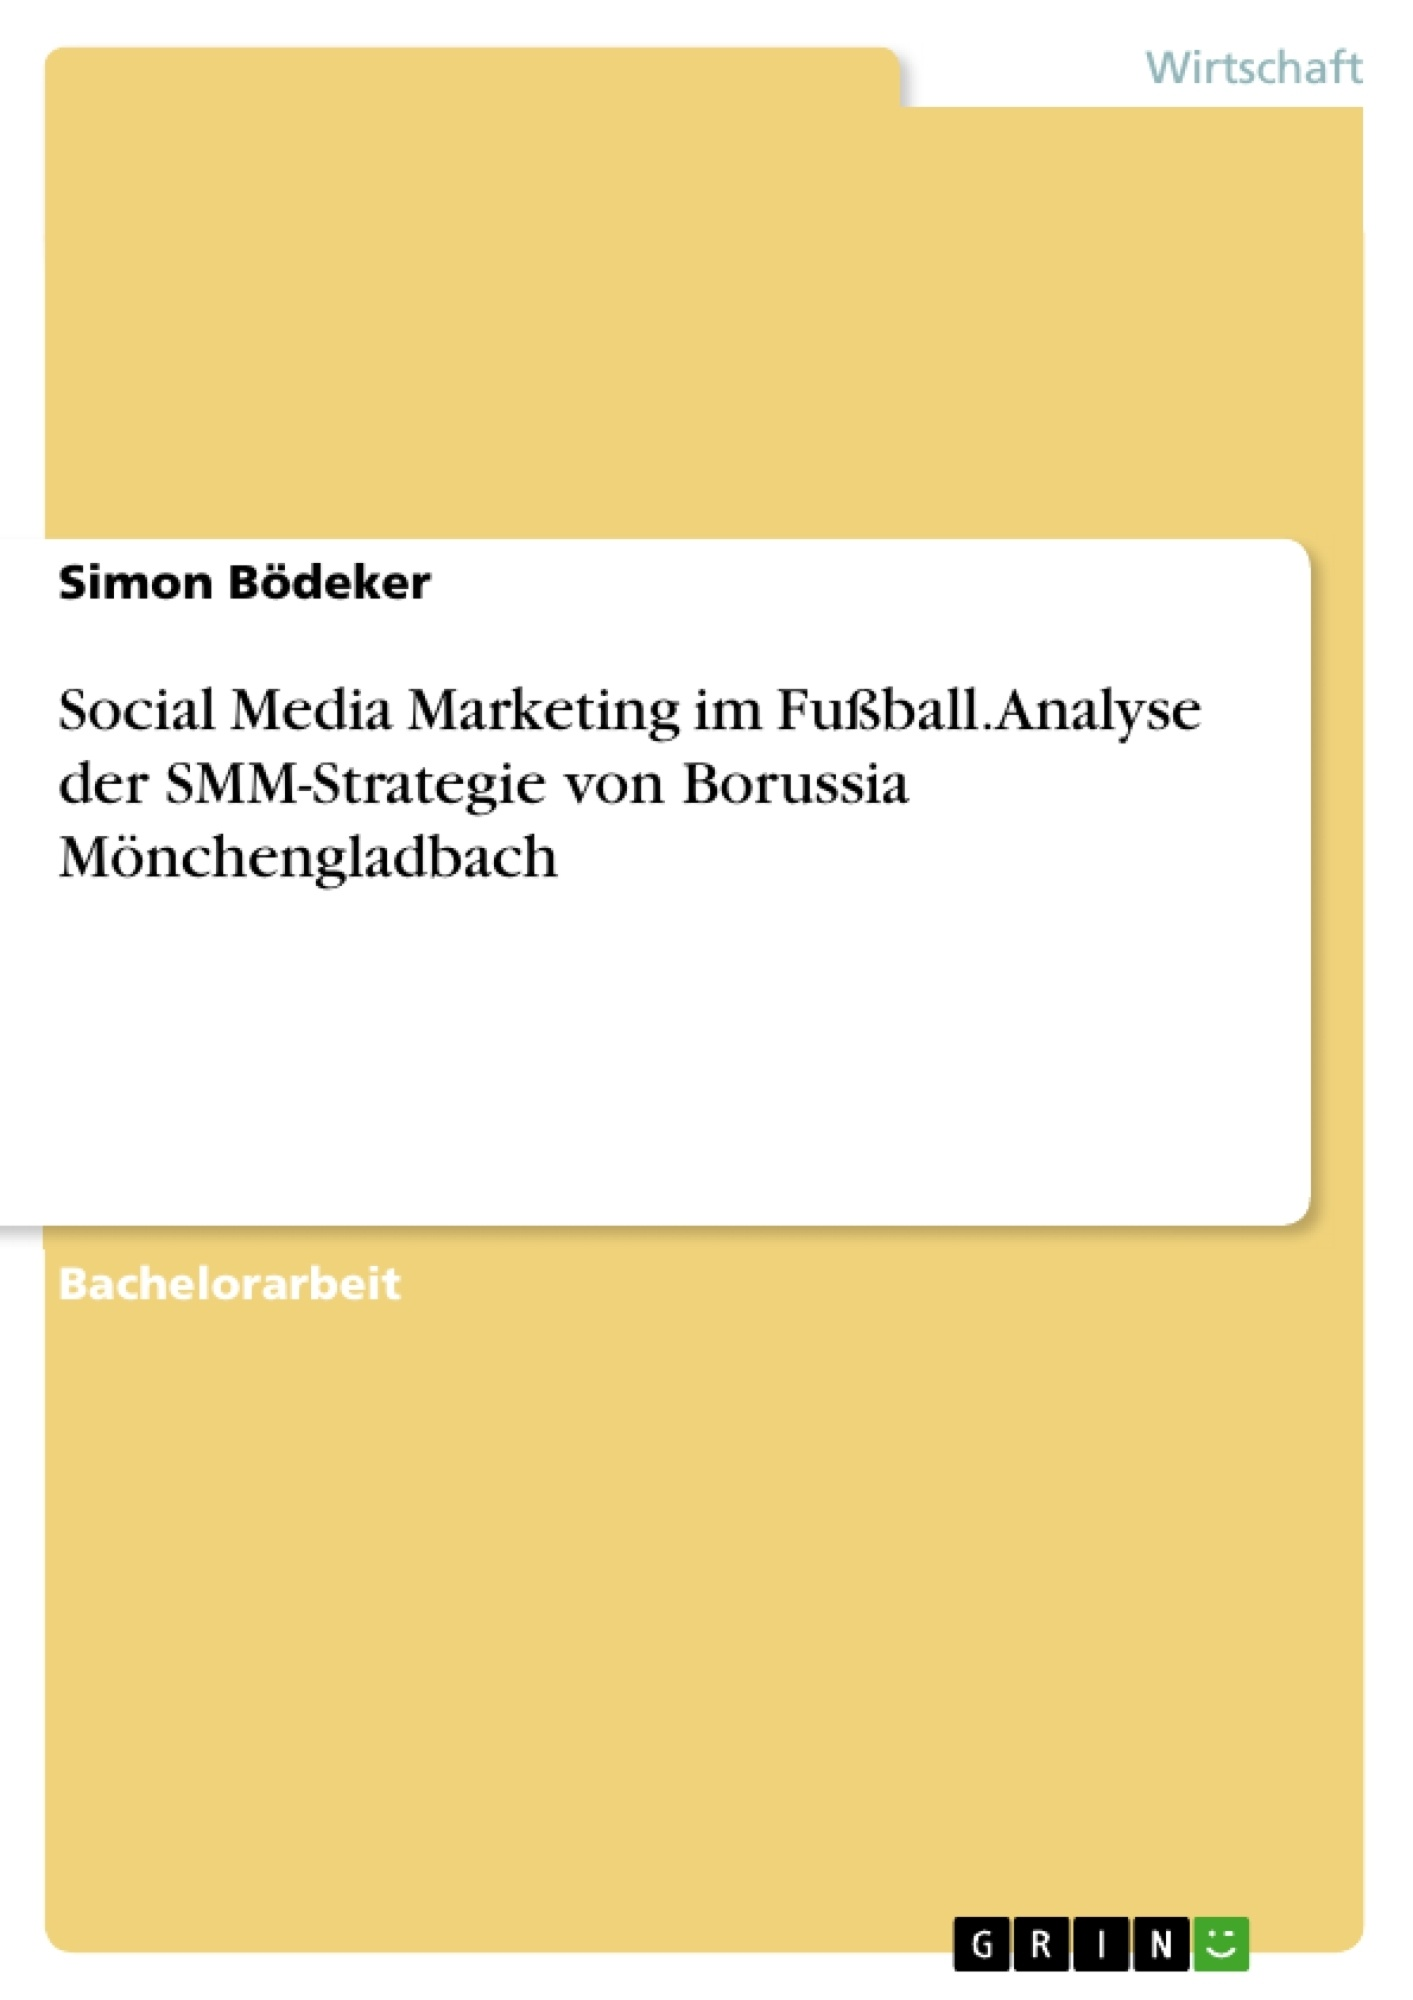 Titel: Social Media Marketing im Fußball. Analyse der SMM-Strategie von Borussia Mönchengladbach